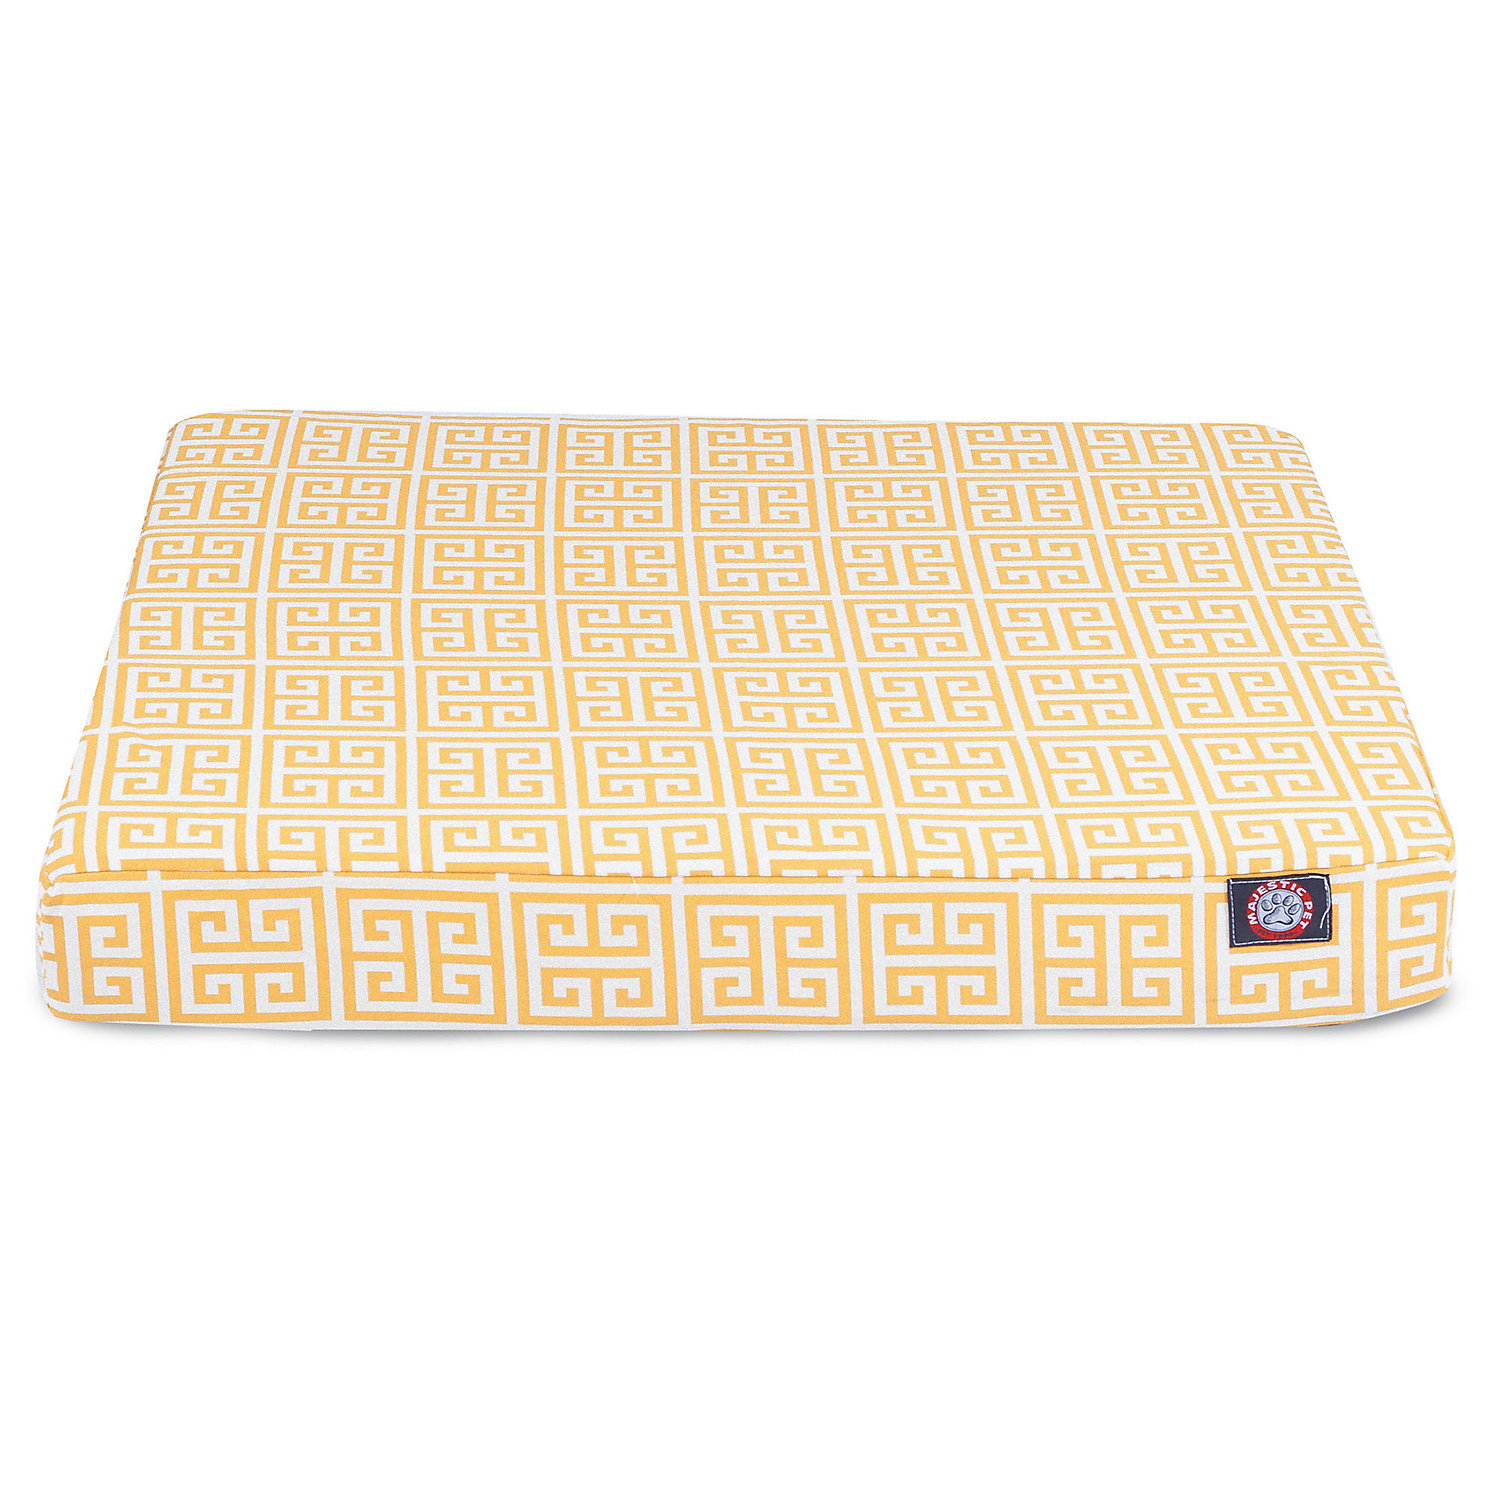 Majestic Pet Citrus Towers Orthopedic Memory Foam Rectangle Dog Bed